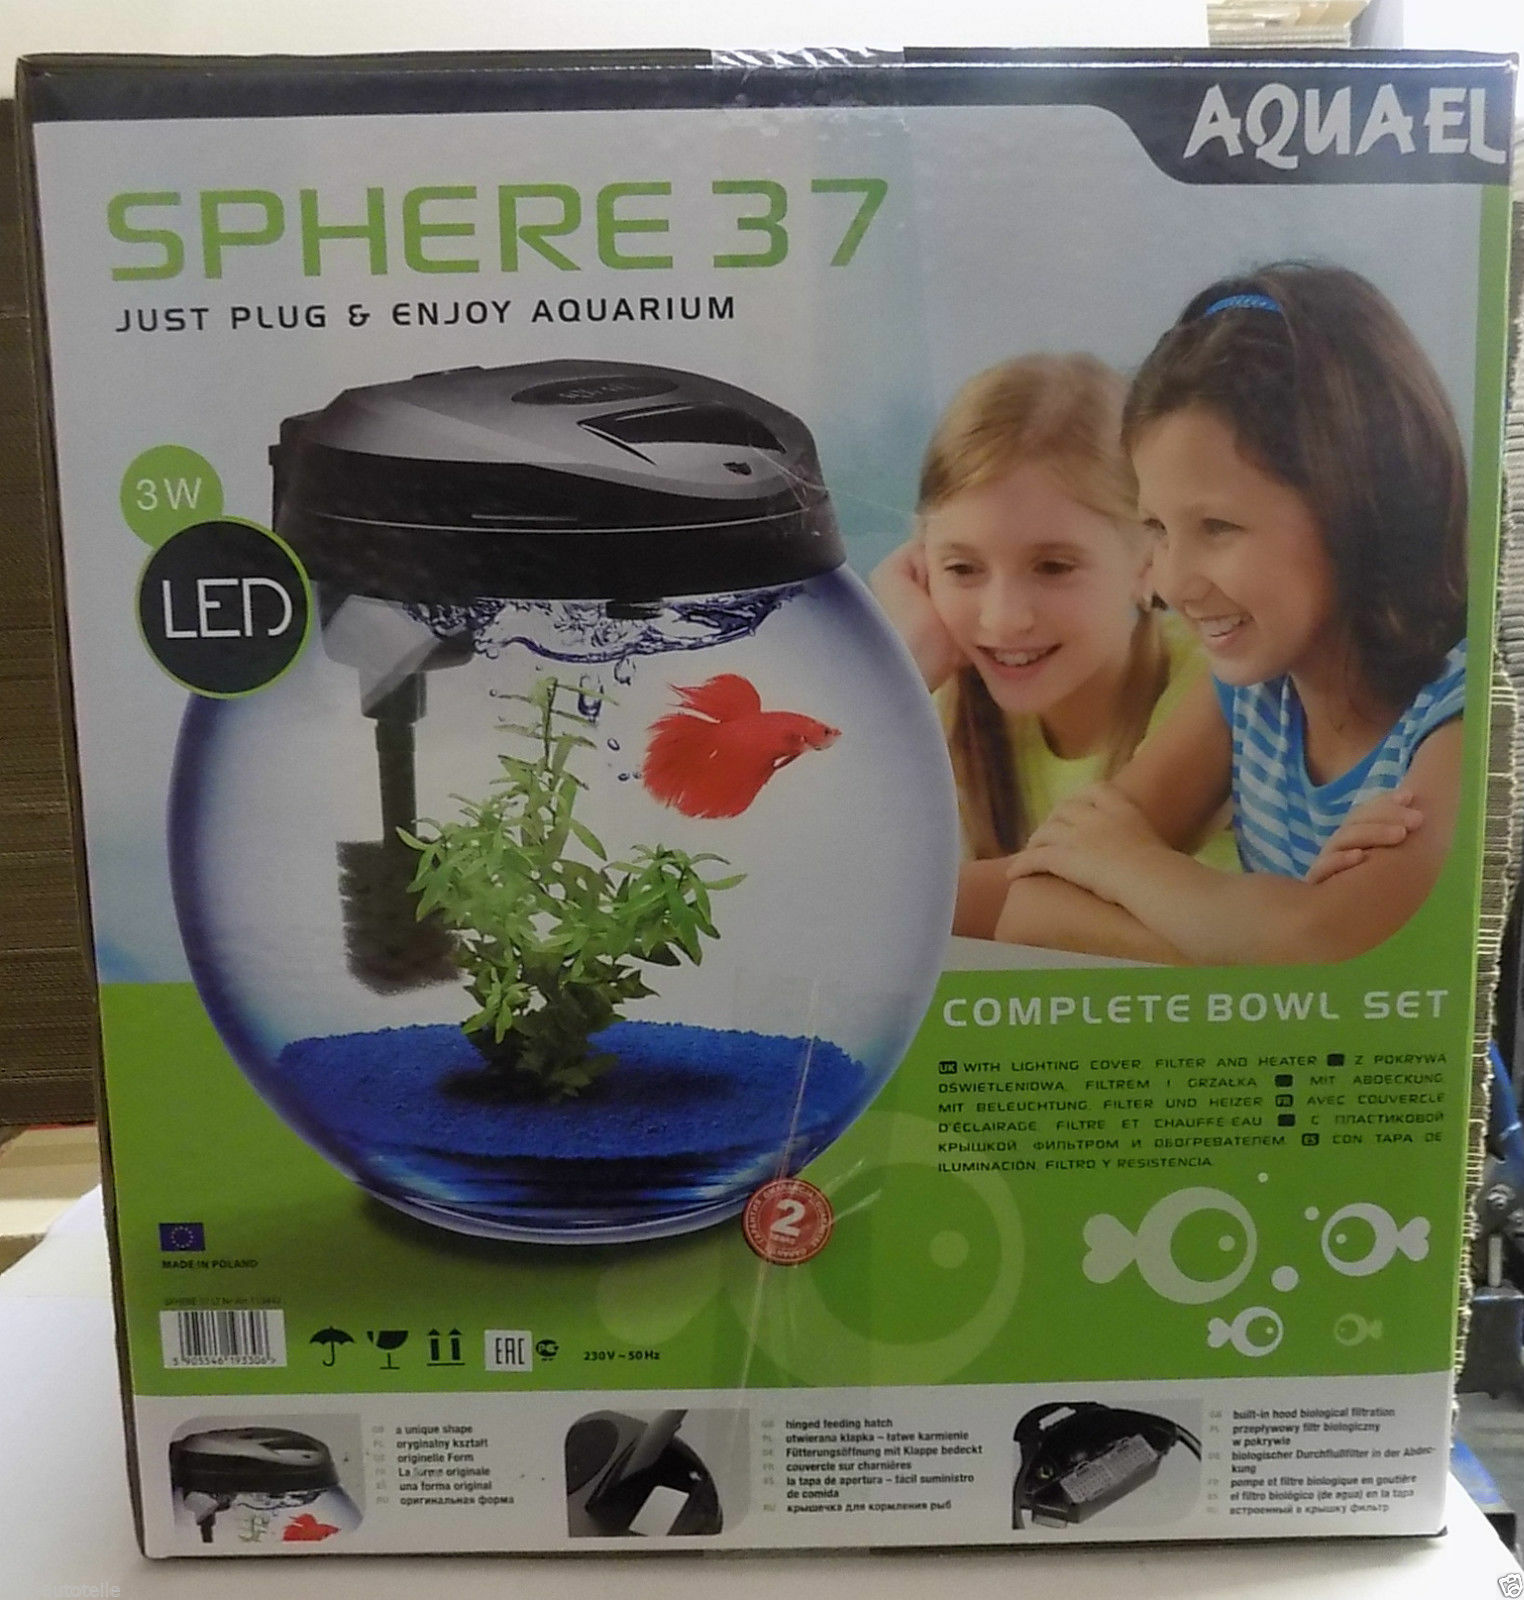 AQUAEL Sphere Aquarium Set 25L Rund komplettset Abdeckung, LED, Heizung, Filter